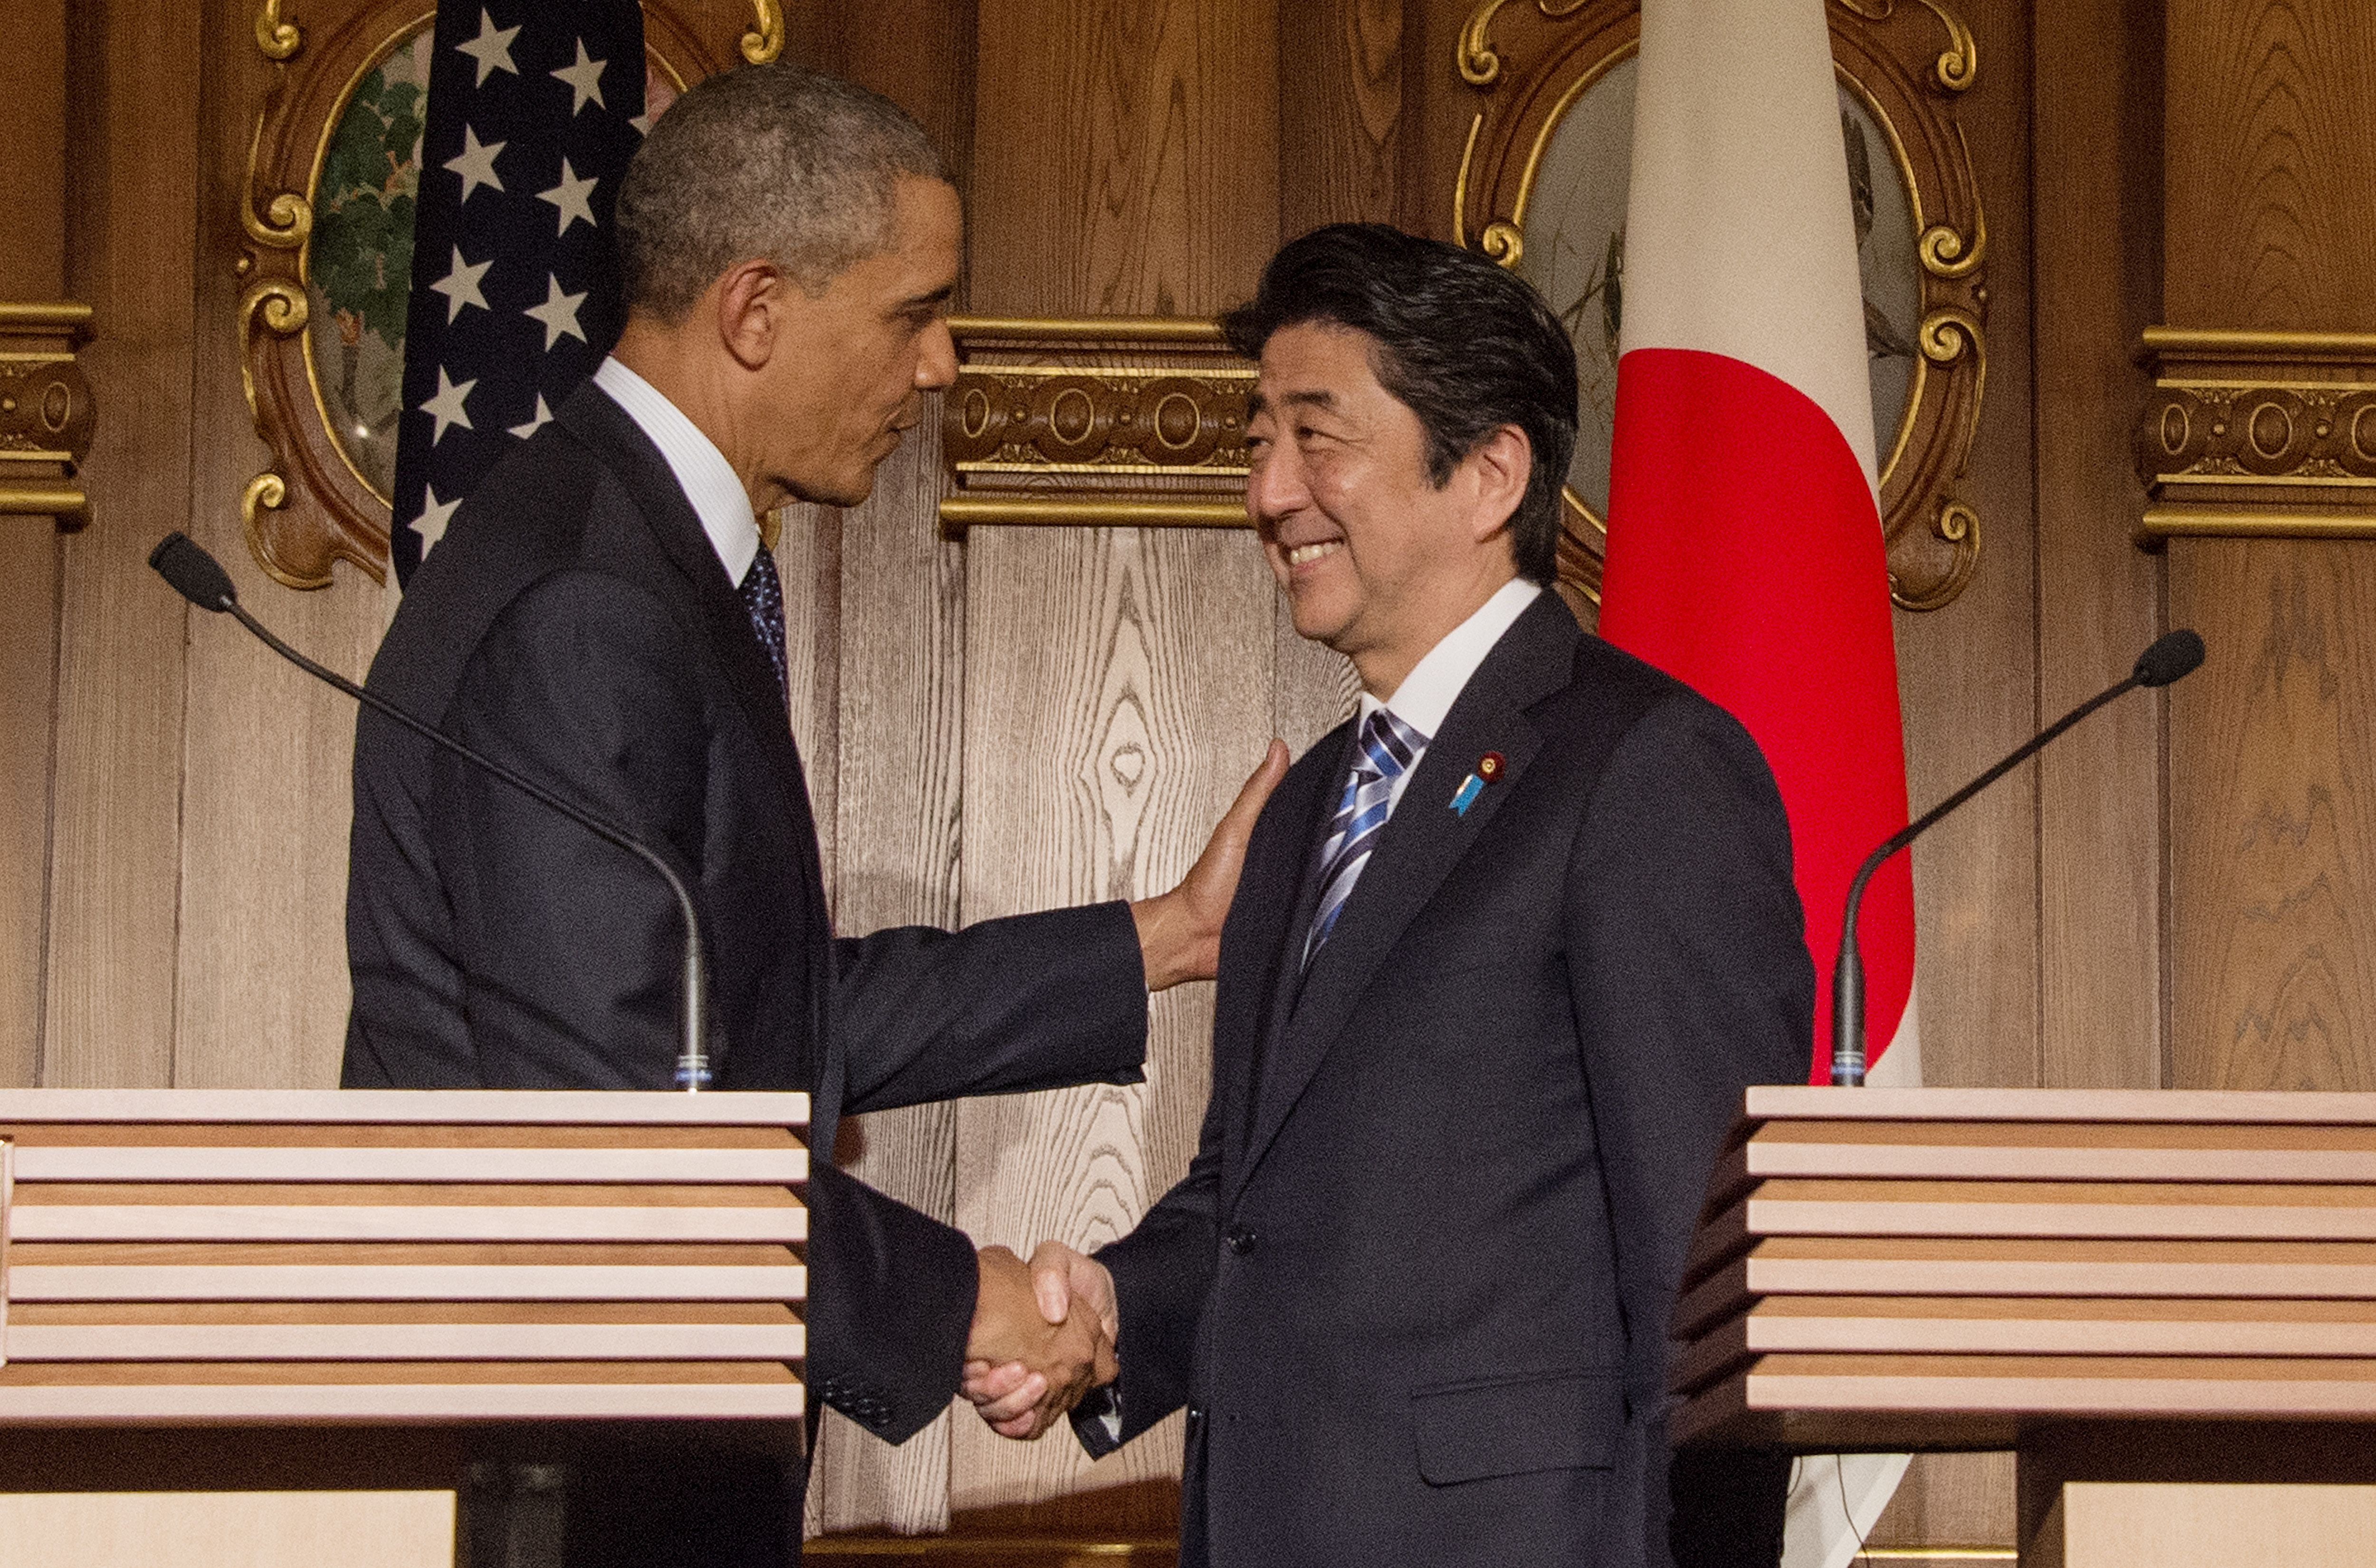 President Barack Obama shakes hands with Japanese Prime Minister Shinzo Abe following a bilateral press conference at the Akasaka Palace in Tokyo on April 24, 2014